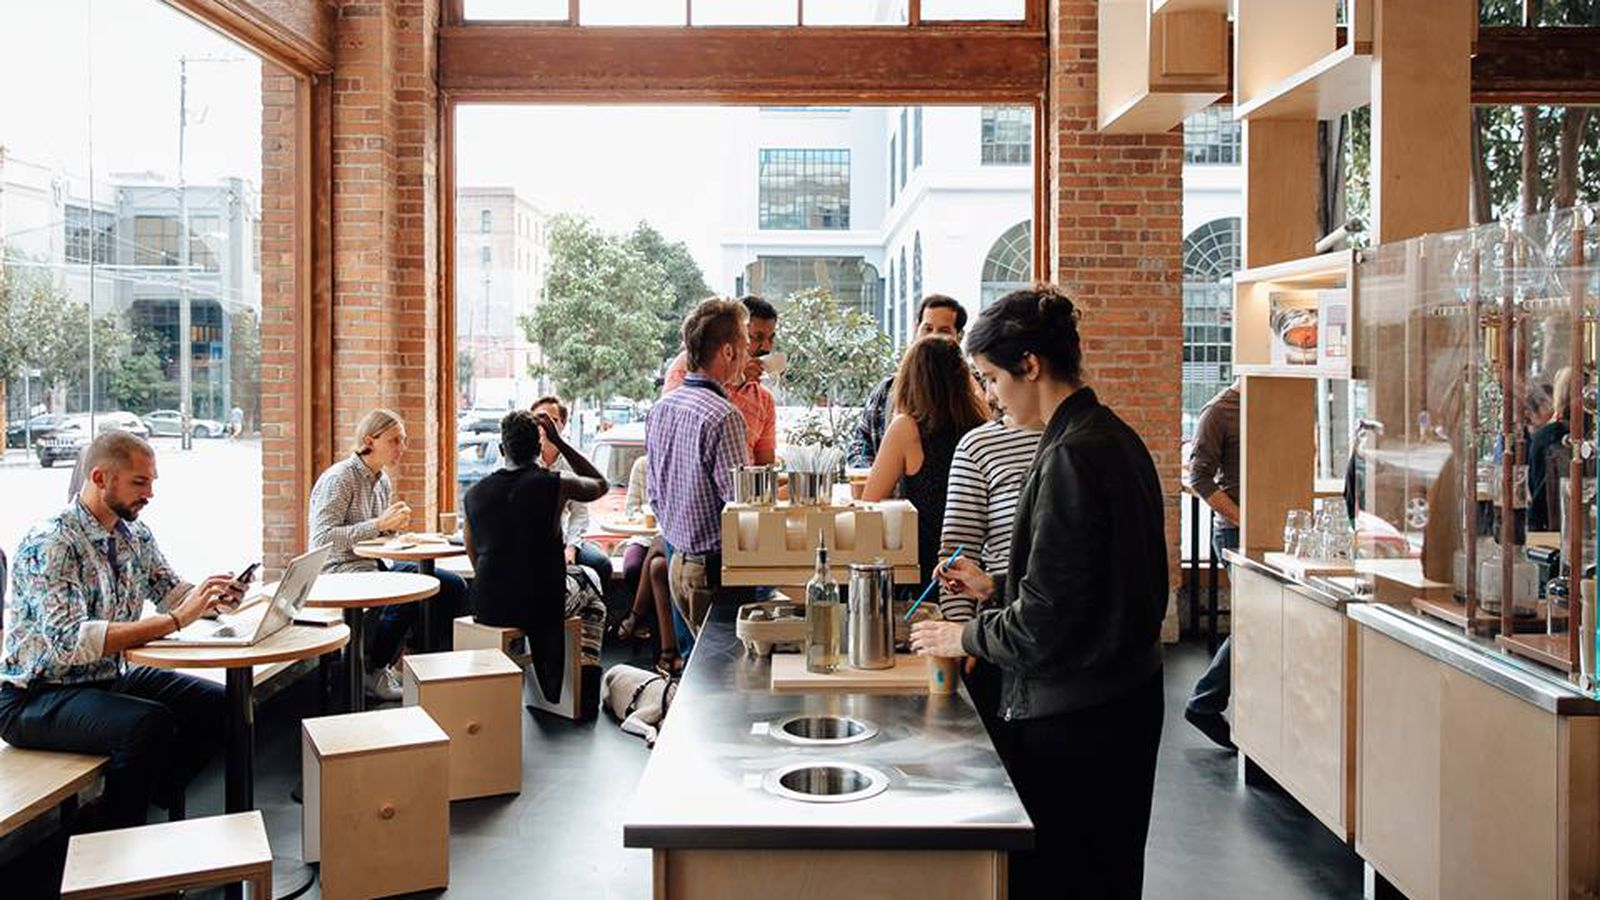 D C S Getting Two Blue Bottle Coffee Shops In The Next Few